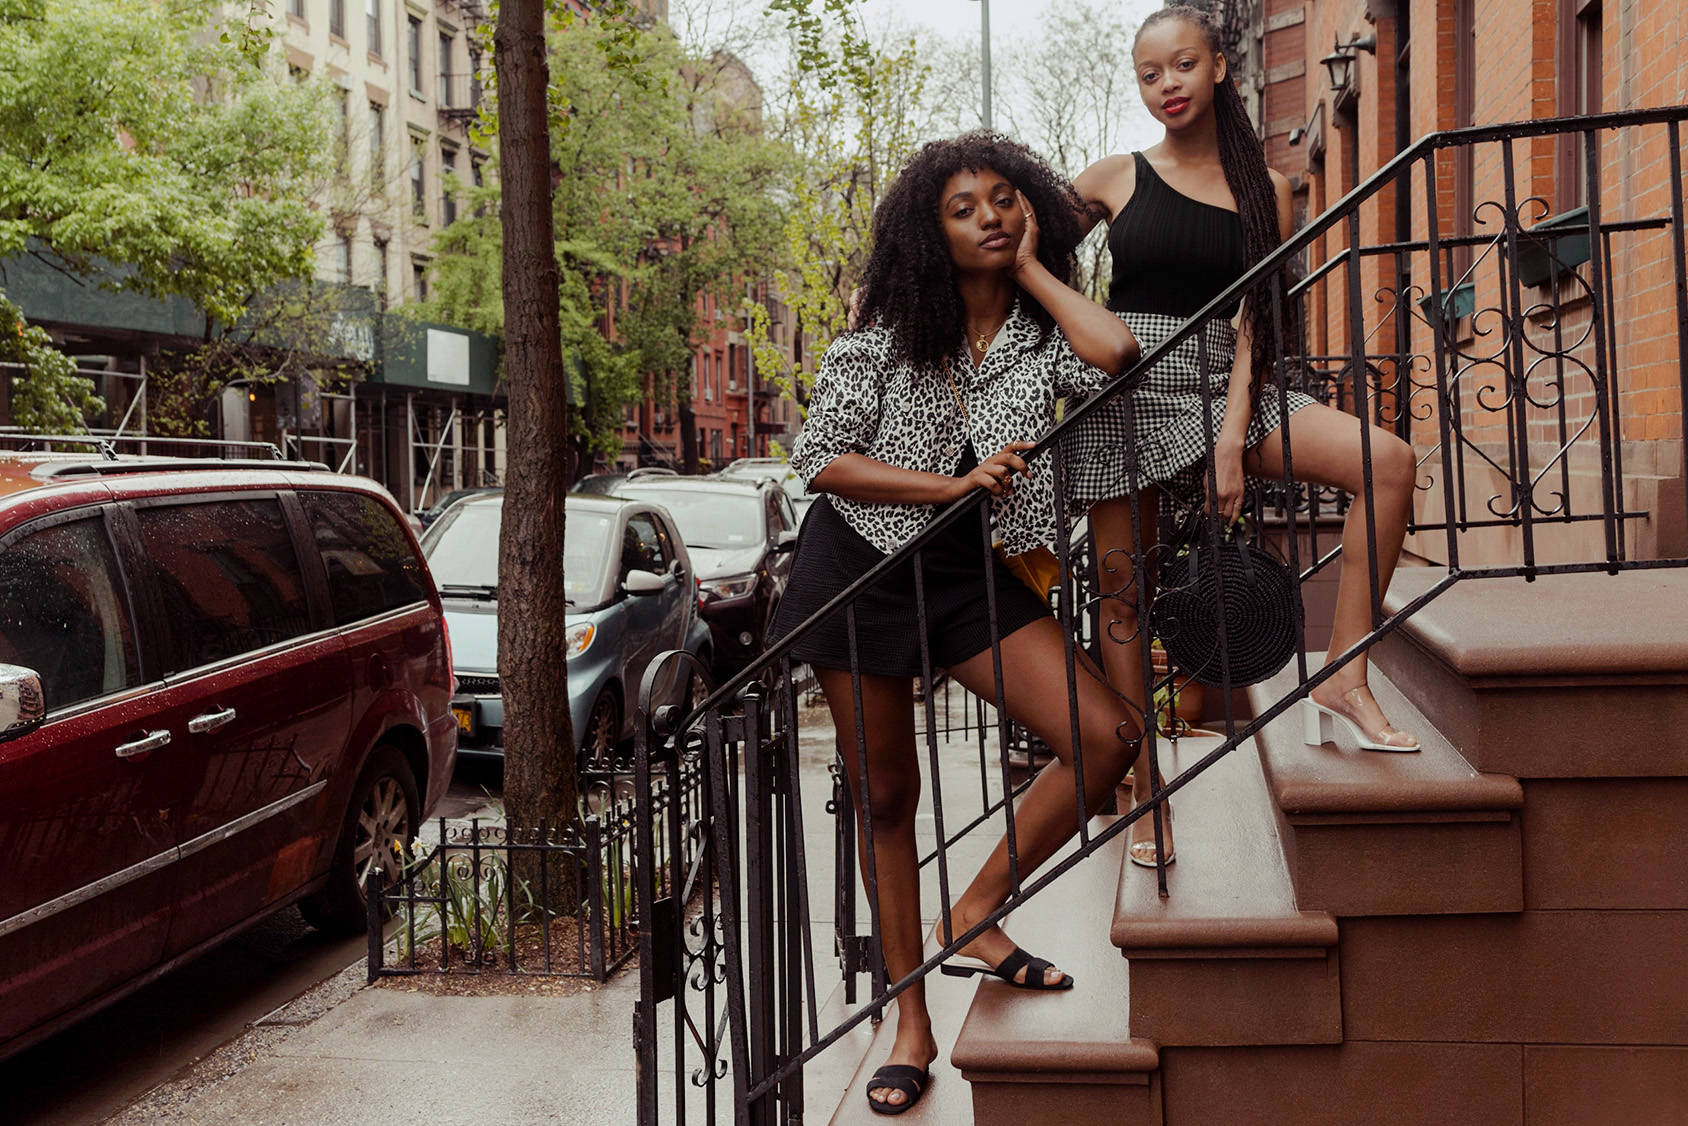 A N.Y. STATE OF MIND WITH GABRIELLE AND ANAJAH